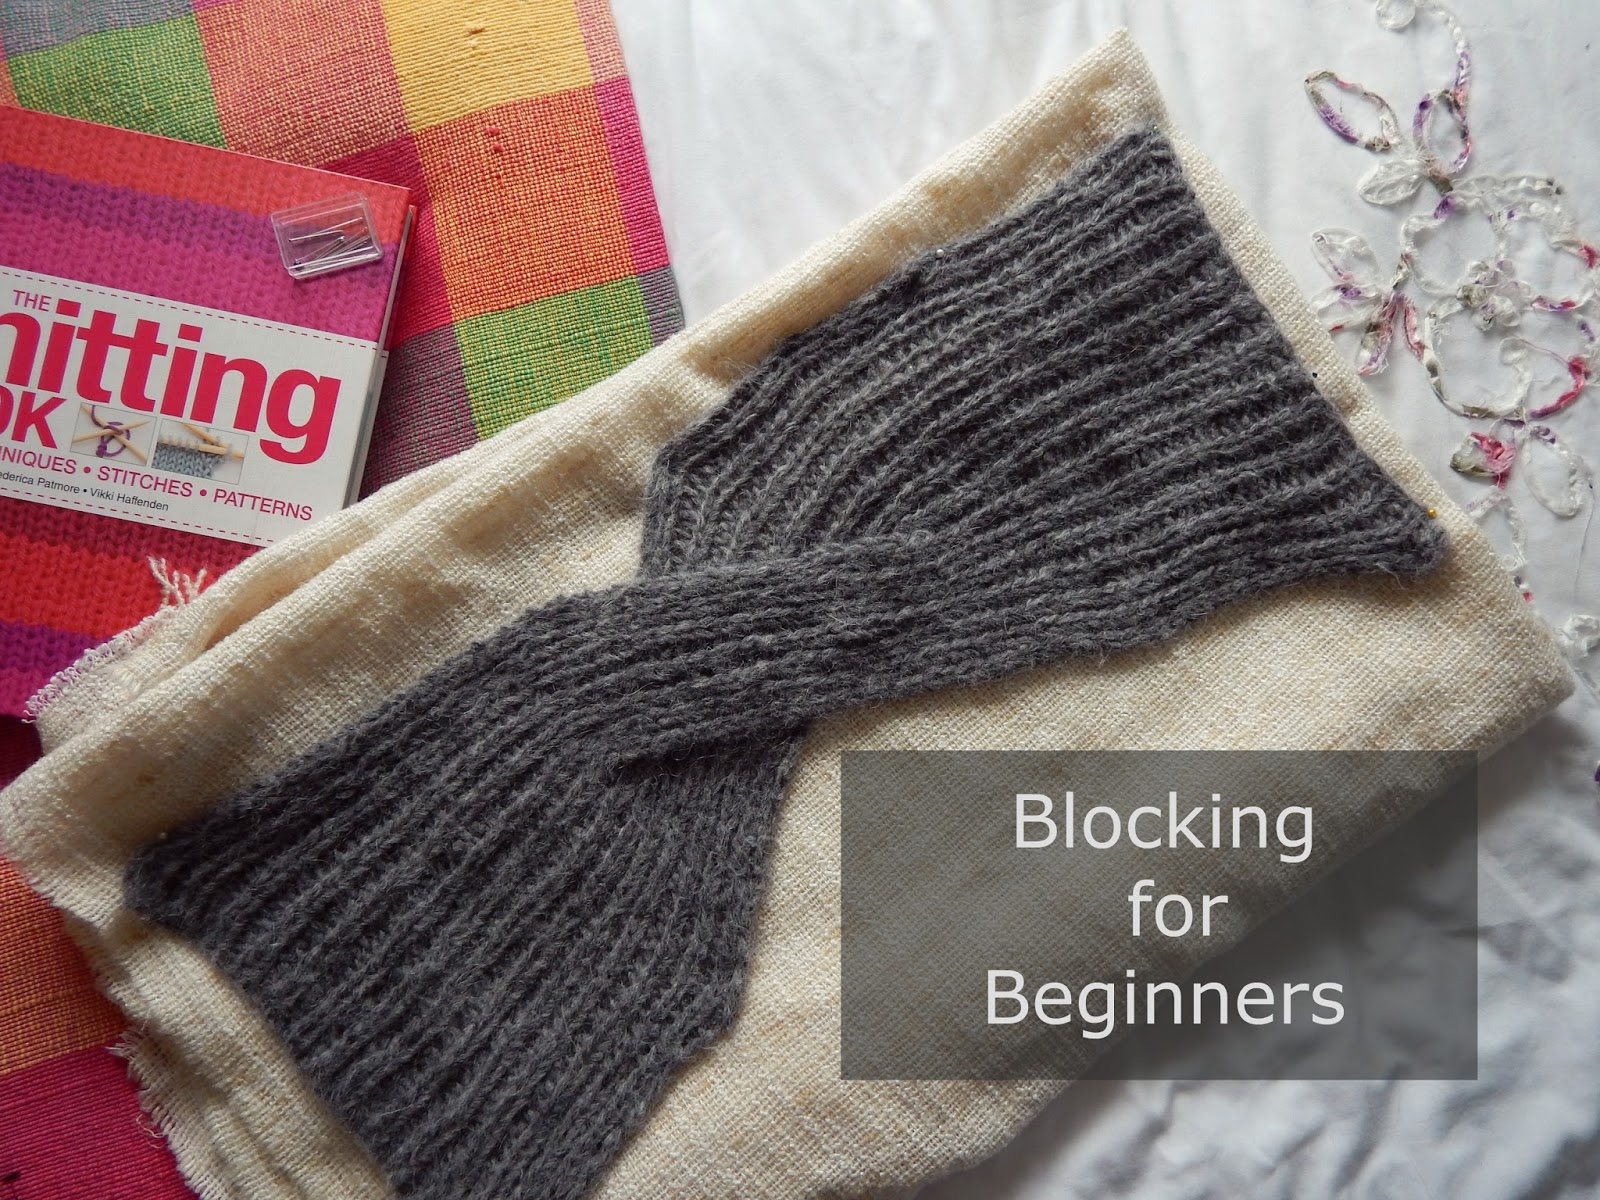 Knitting Blocking for Beginners